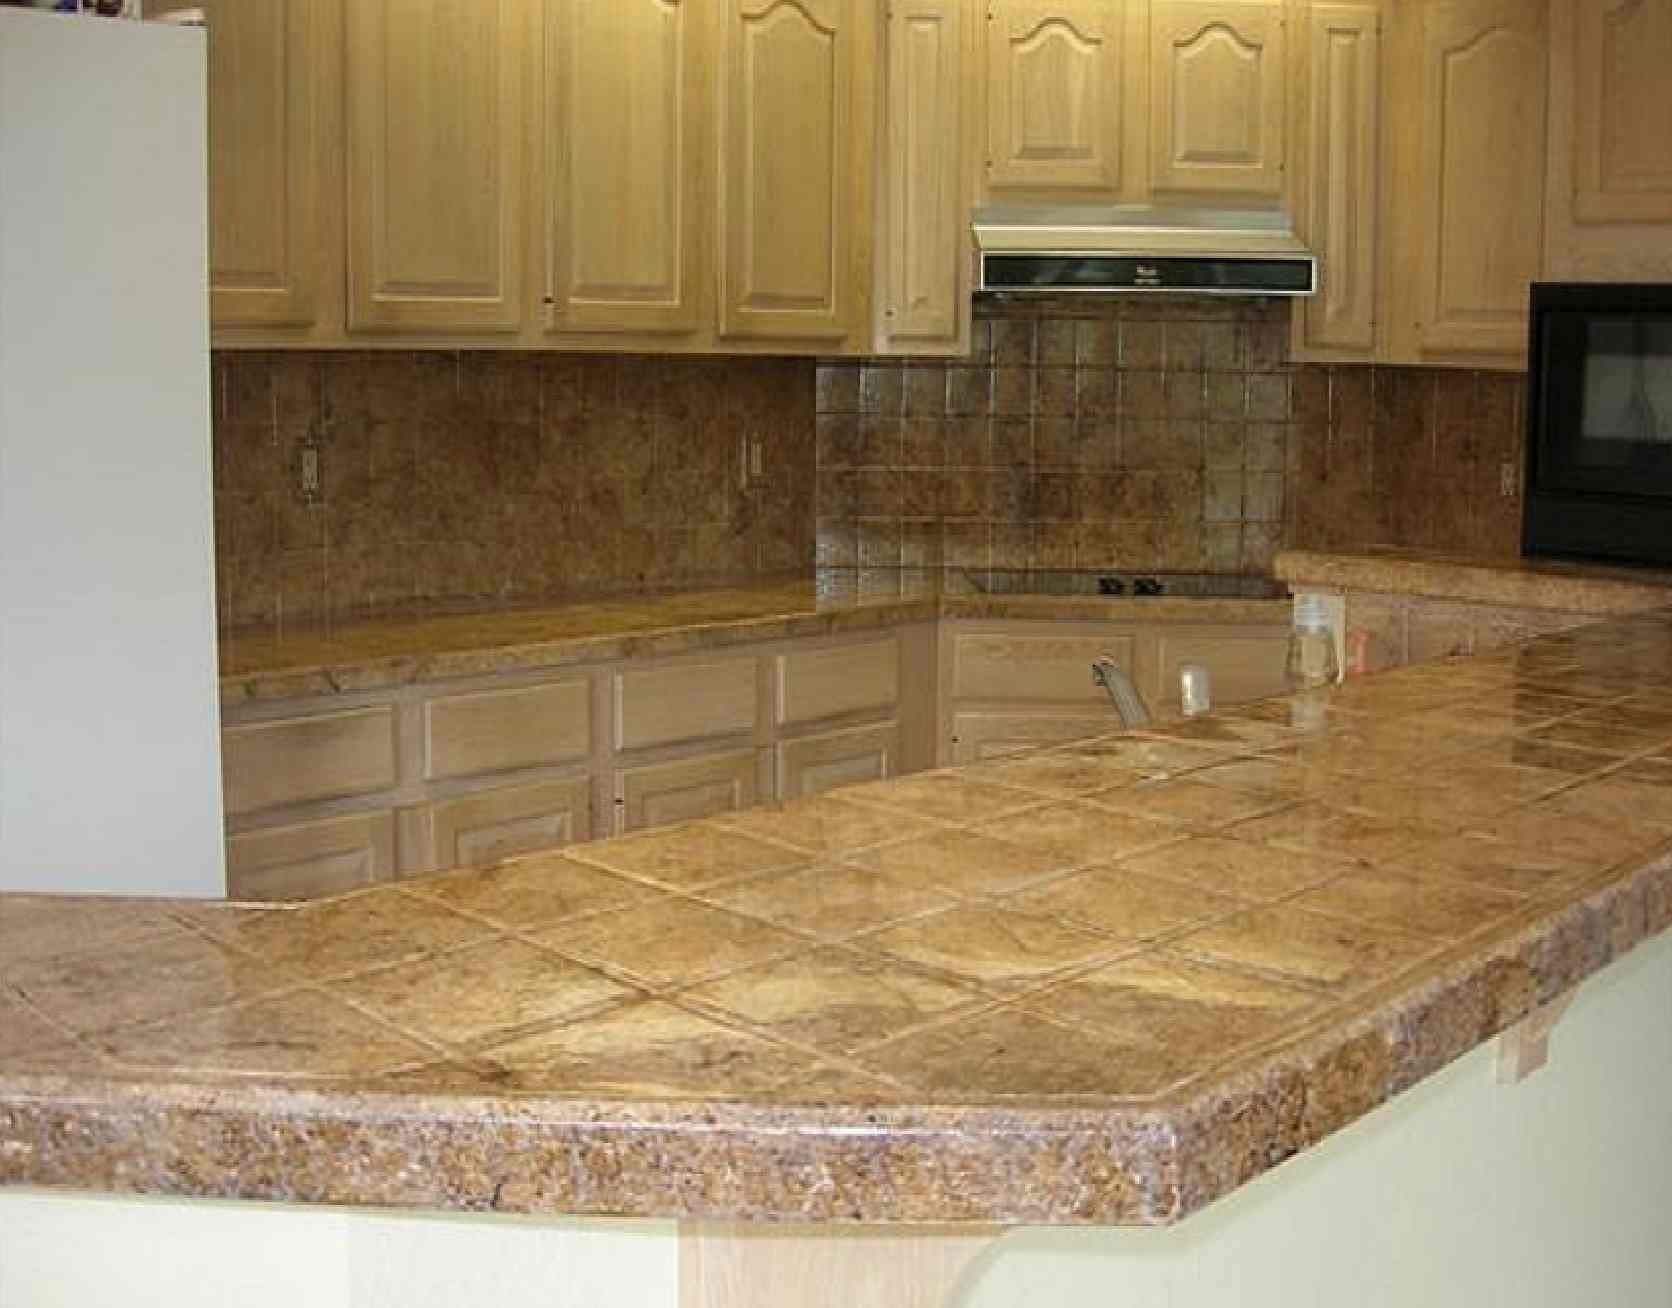 Is Ceramic Tile Good For Kitchen Countertops